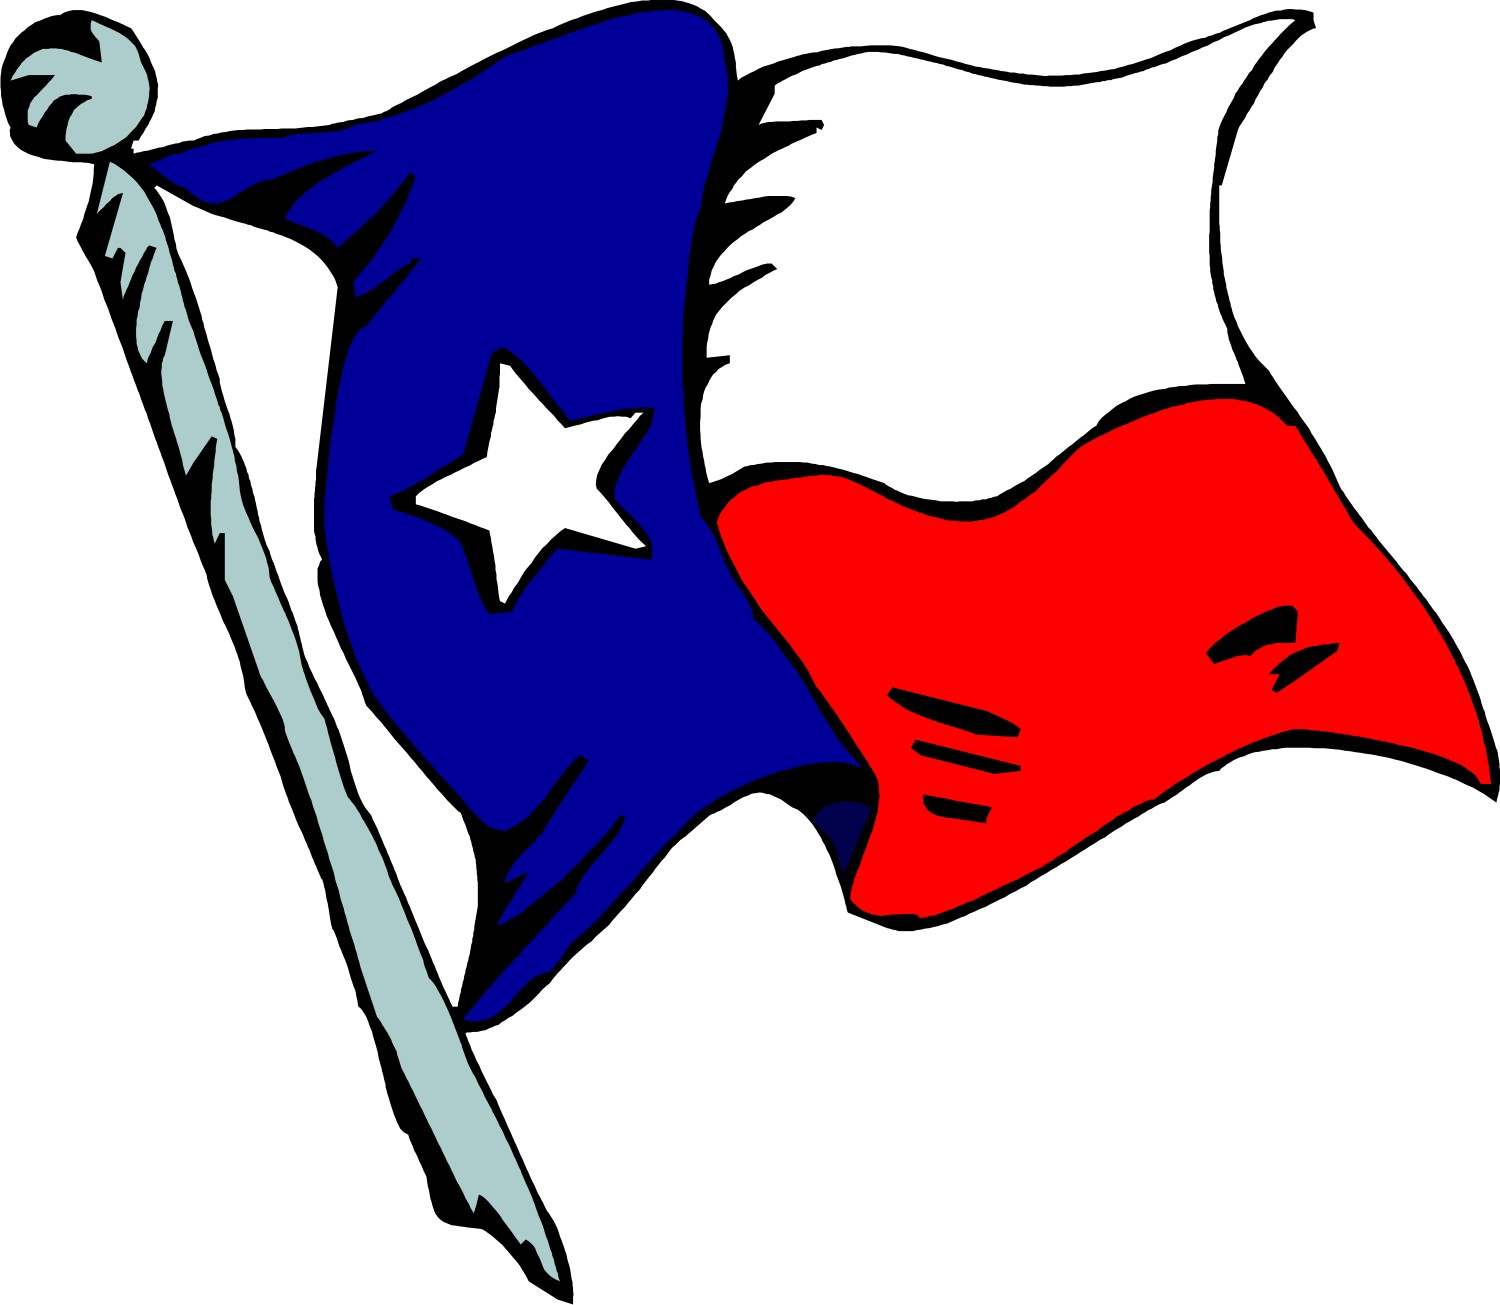 1500x1305 Texas Outline Clipart Free Clipart Images 4